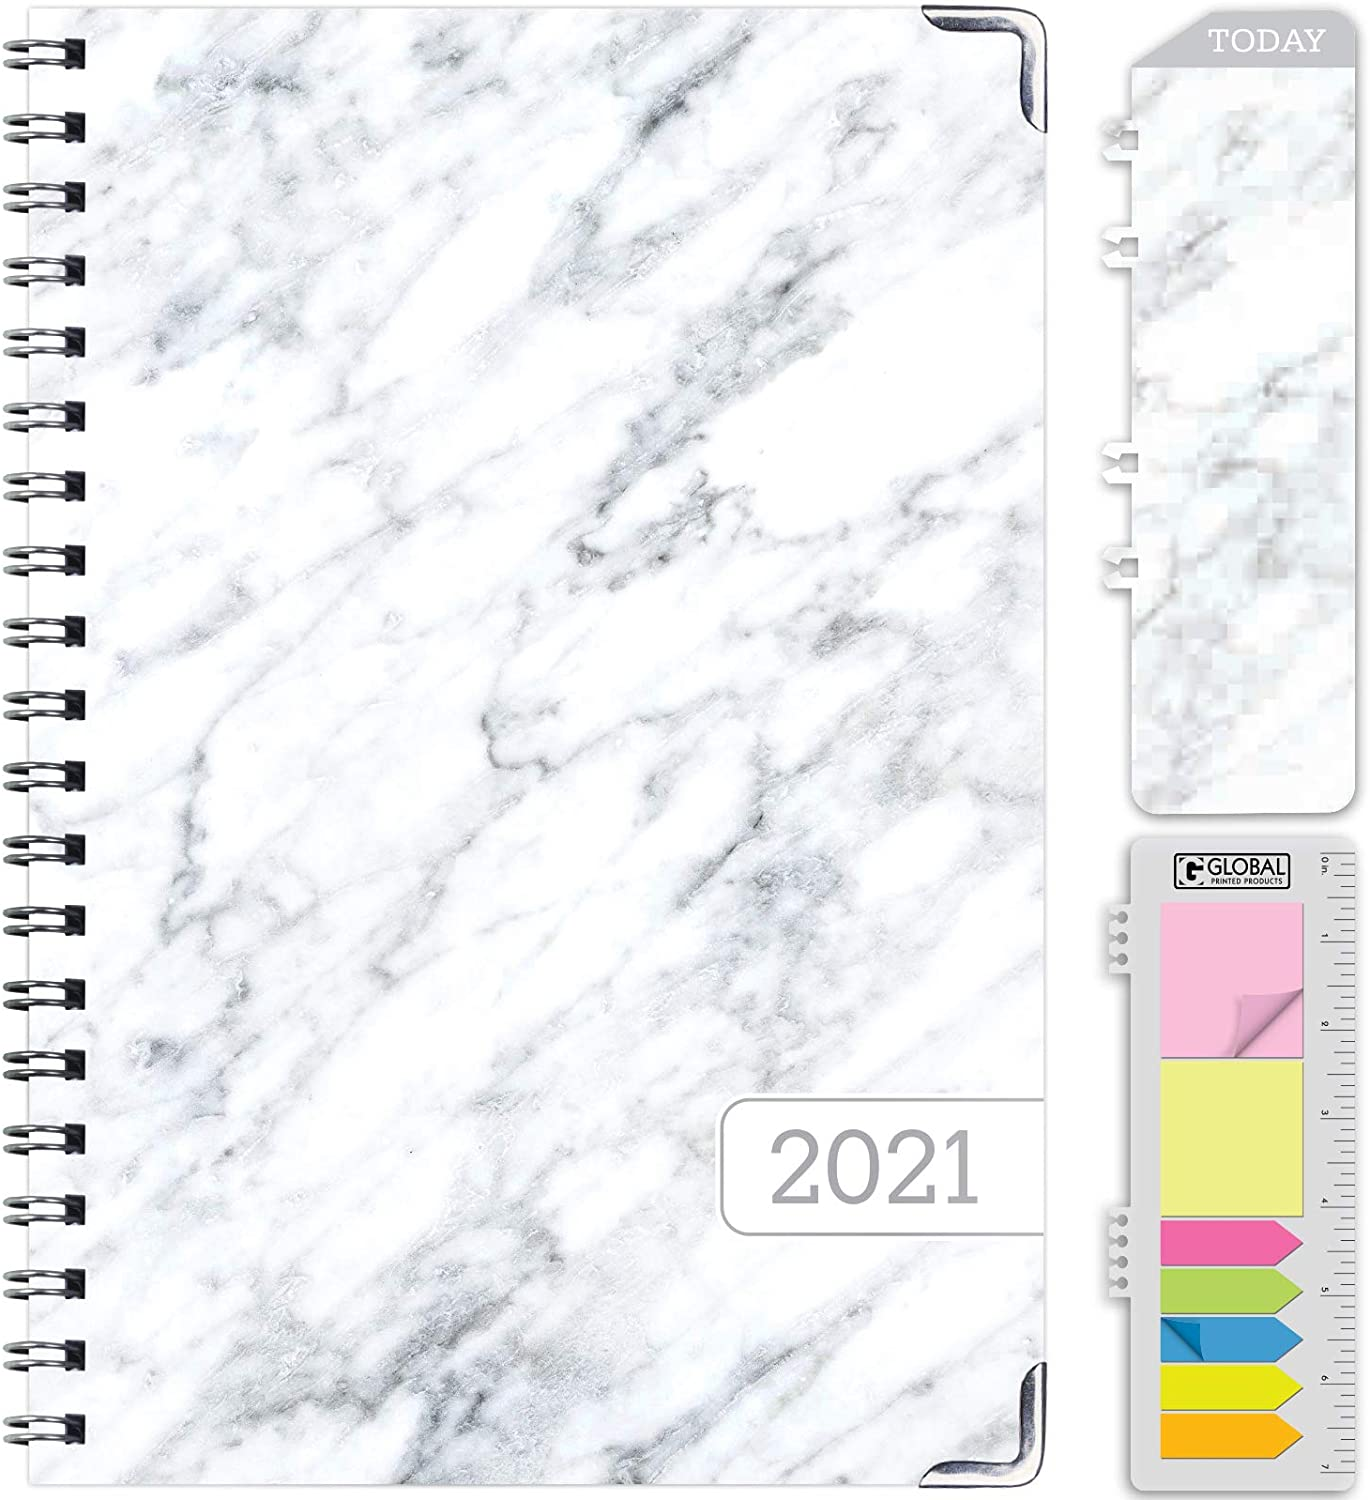 November 2020 Through December 2021 5.5x8 Daily Weekly Monthly Planner Yearly Agenda Bookmark HARDCOVER 2021 Planner: Grey Marble Pocket Folder and Sticky Note Set